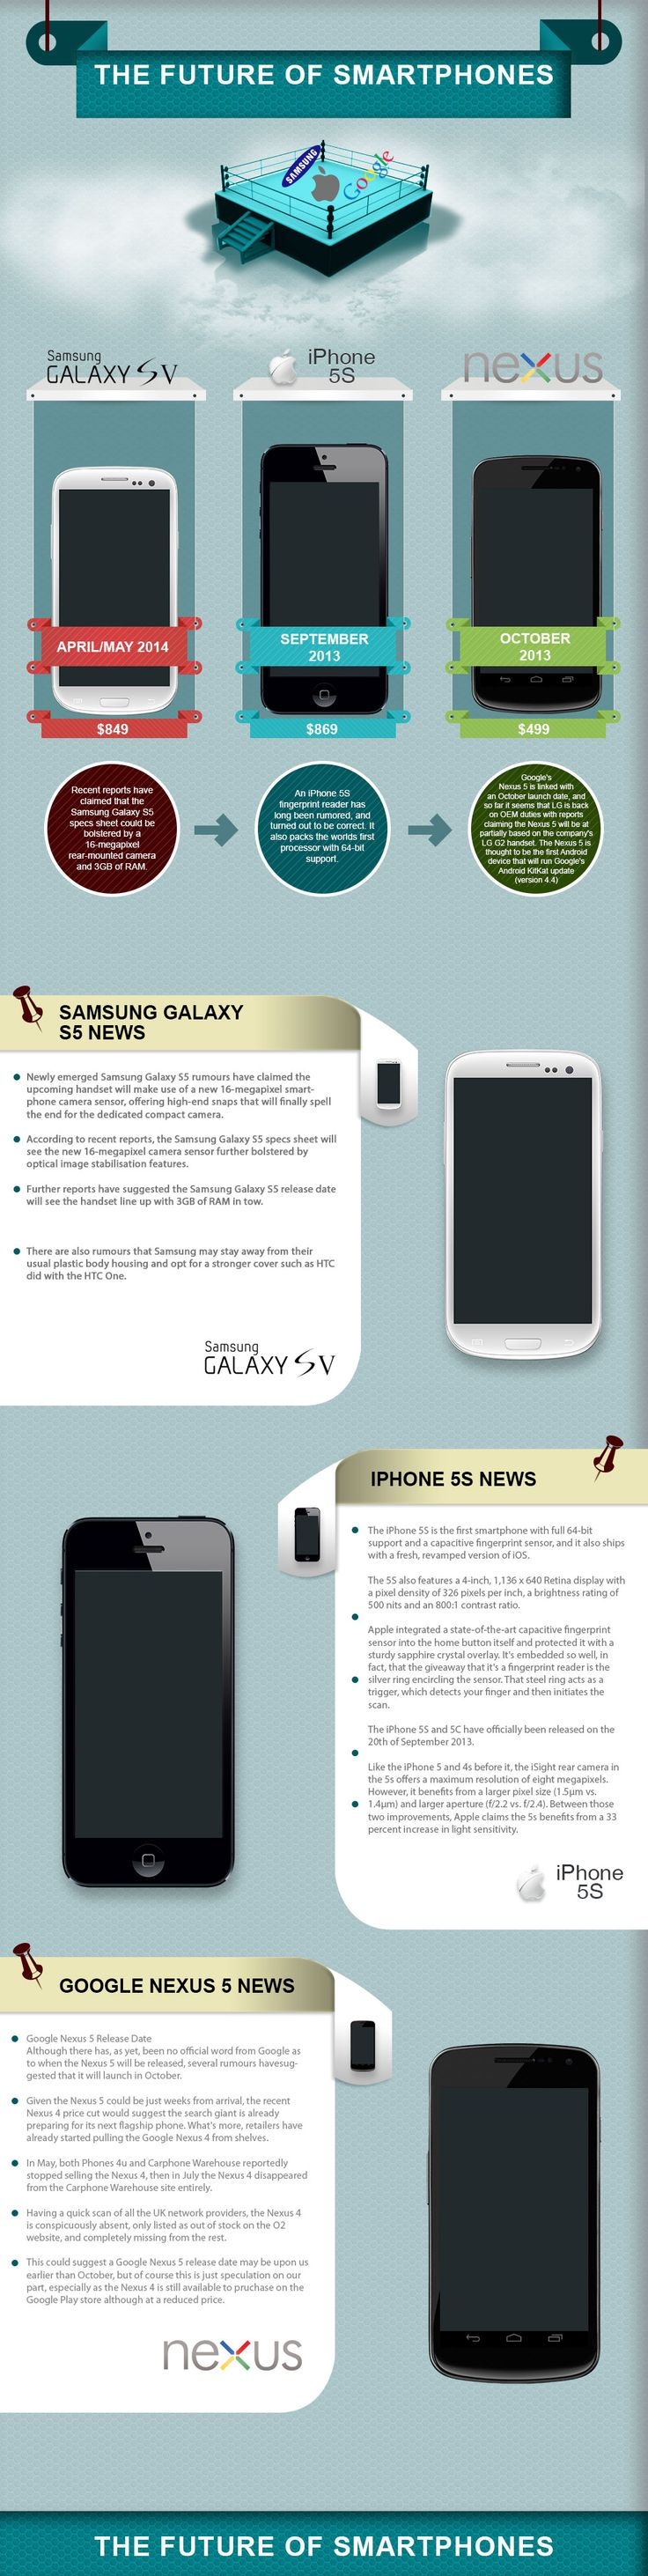 The future of #Smartphones #infographic